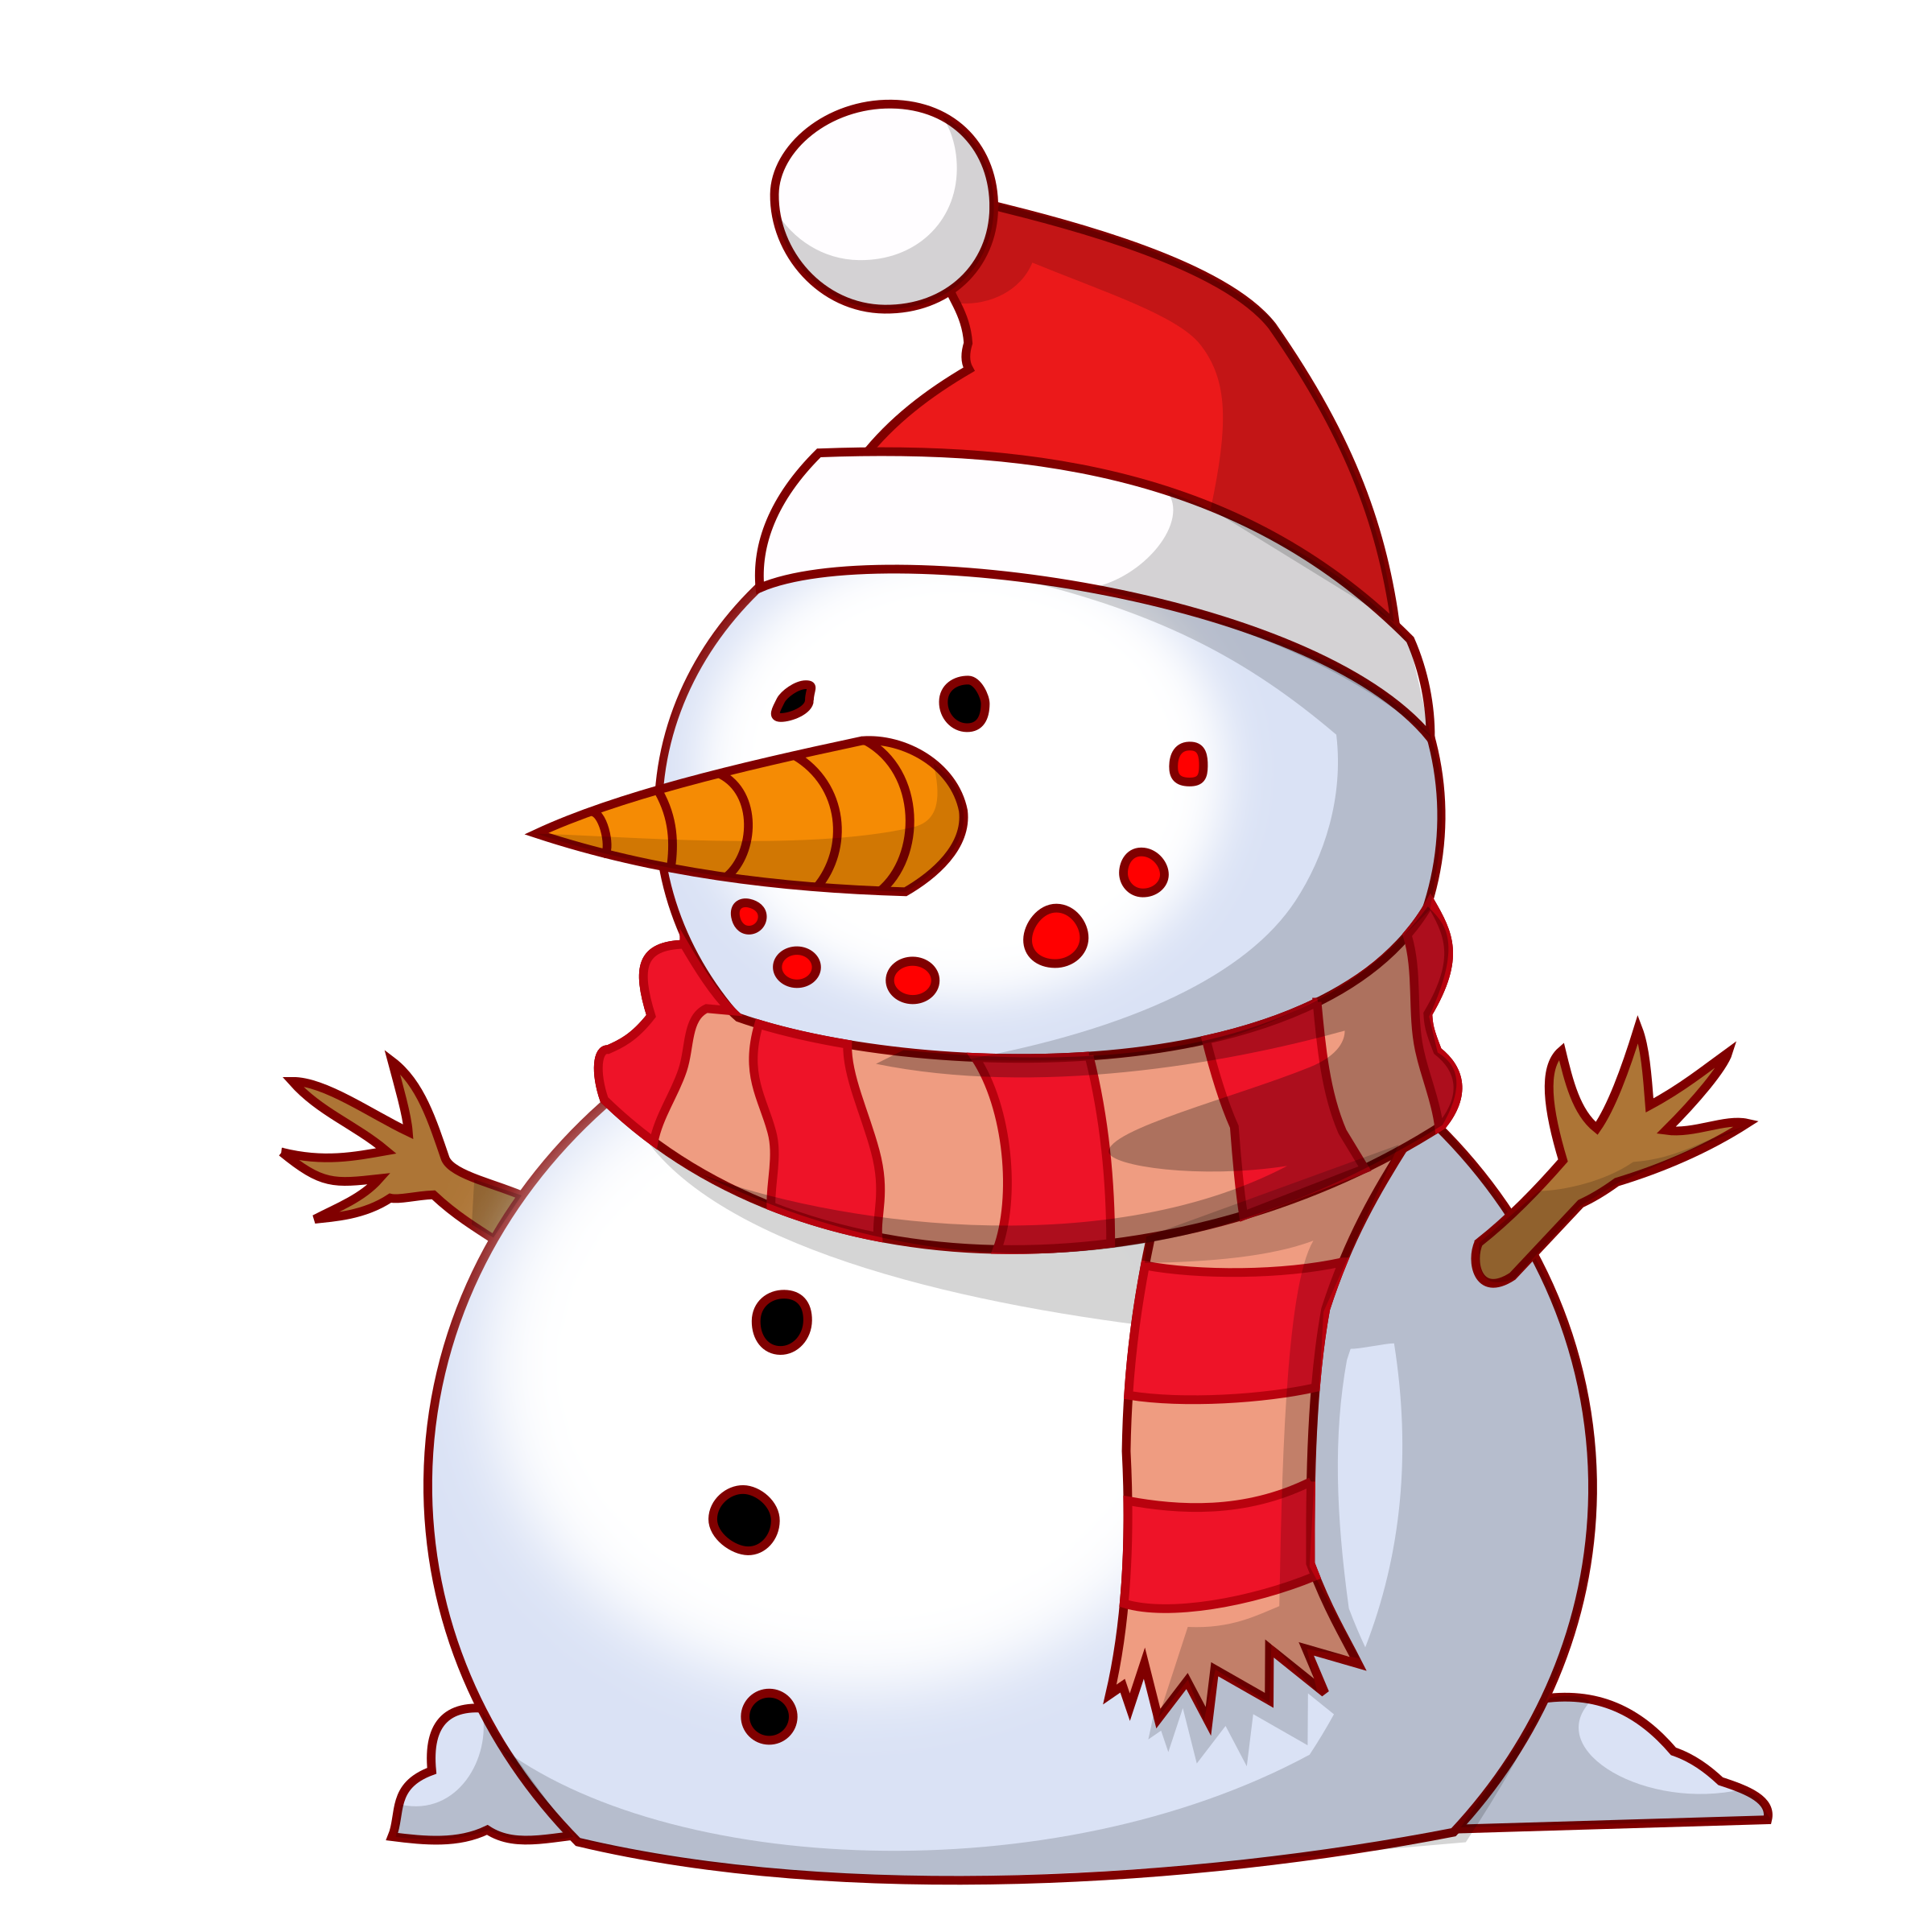 Snowman book clipart image free download Christmas Snowman Clipart at GetDrawings.com | Free for personal use ... image free download